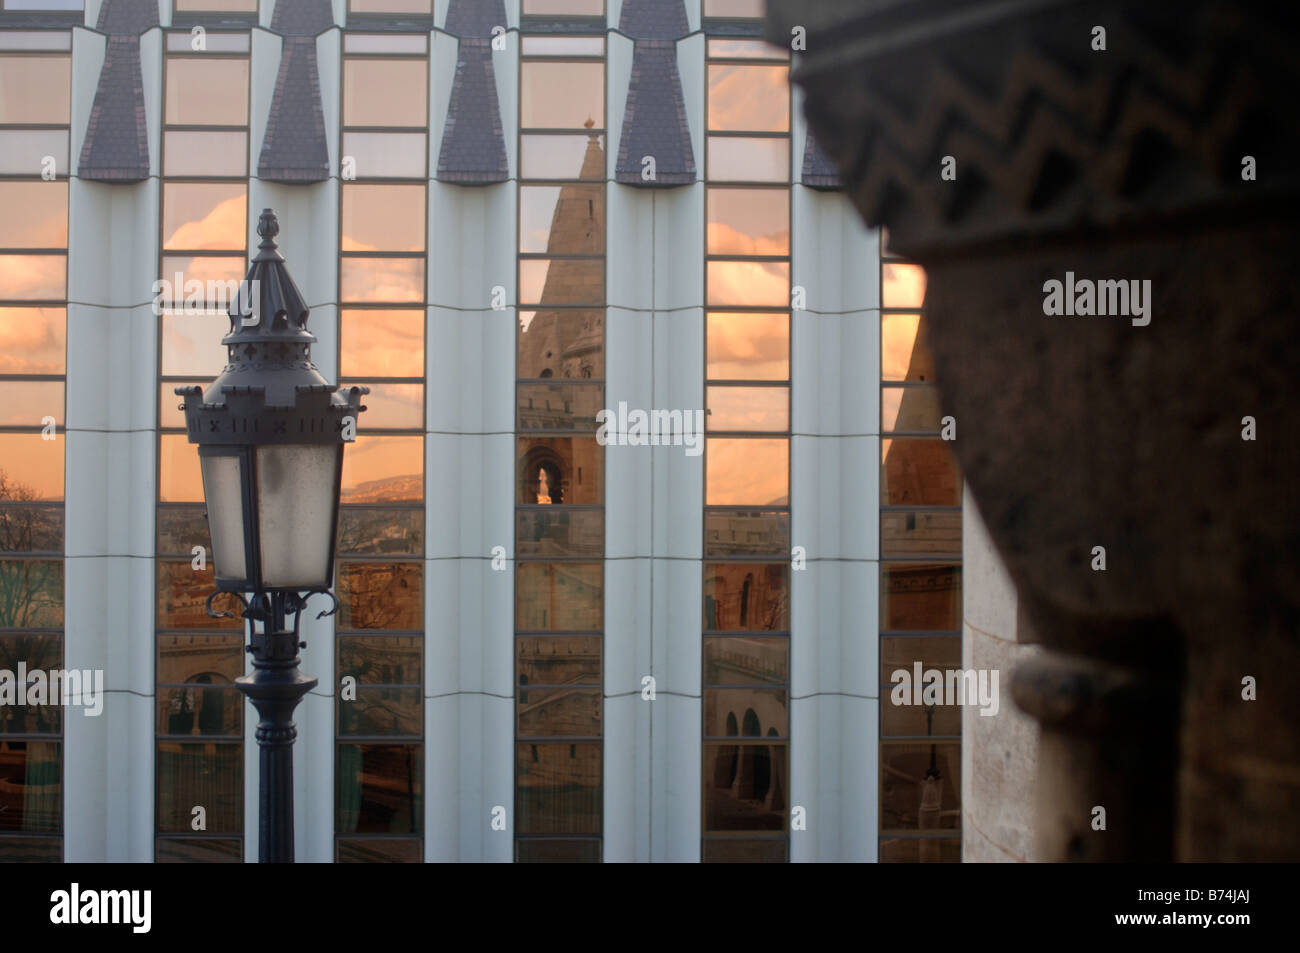 REFLECTION OF A SUNSET OVER THE FISHERMAN S BASTION IN BUDAPEST HUNGARY IN A MODERN GLASS BUILDING Stock Photo